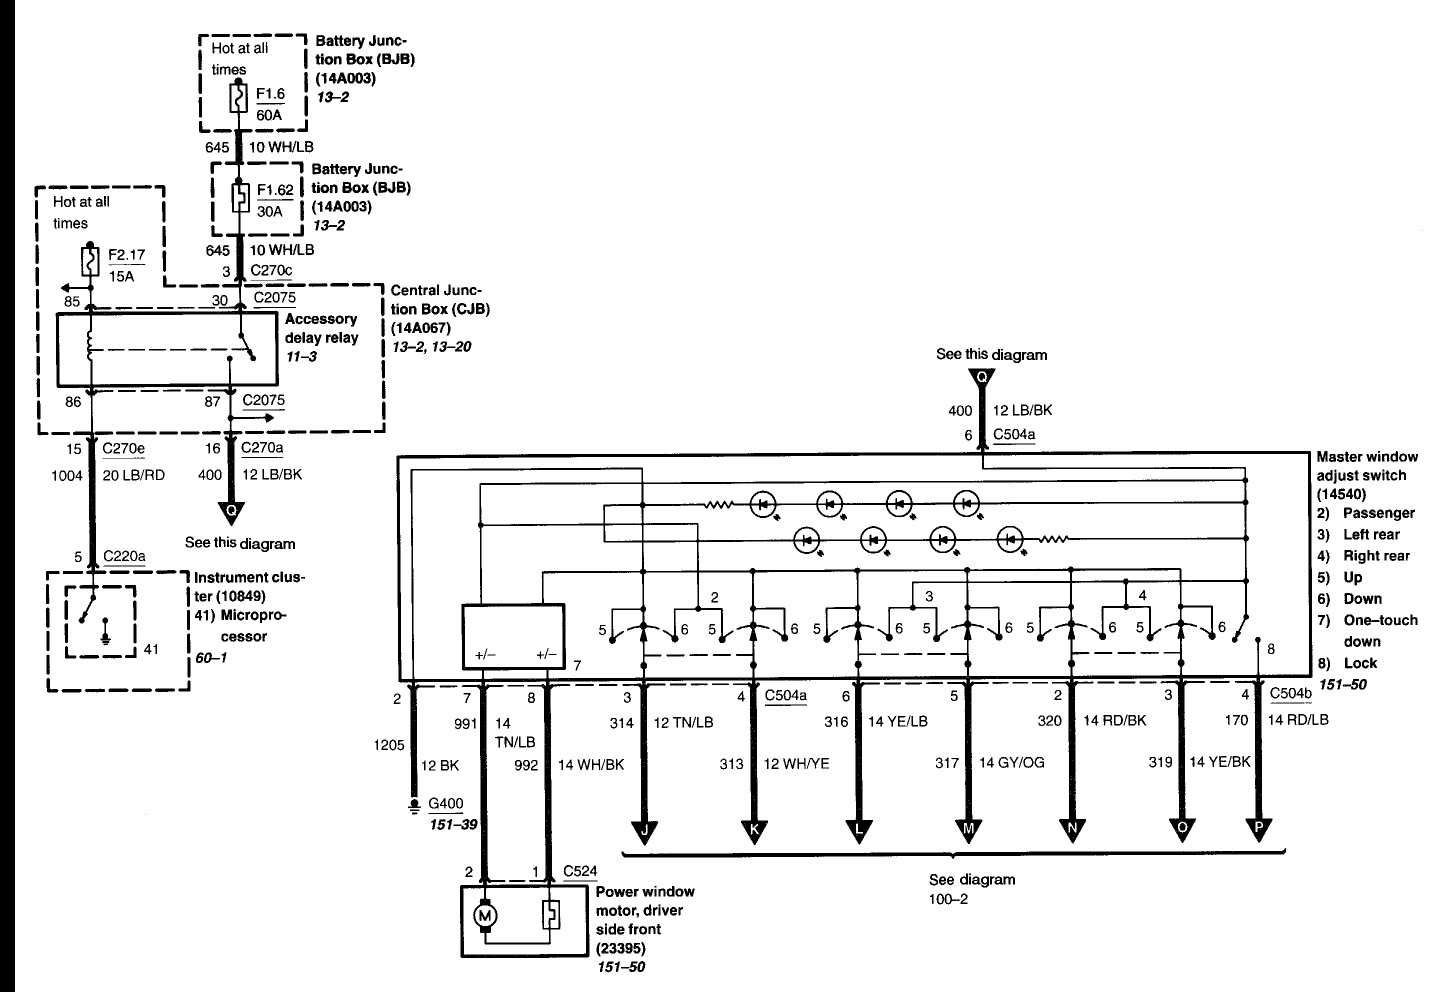 2003 Ford Explorer Wiring Diagram